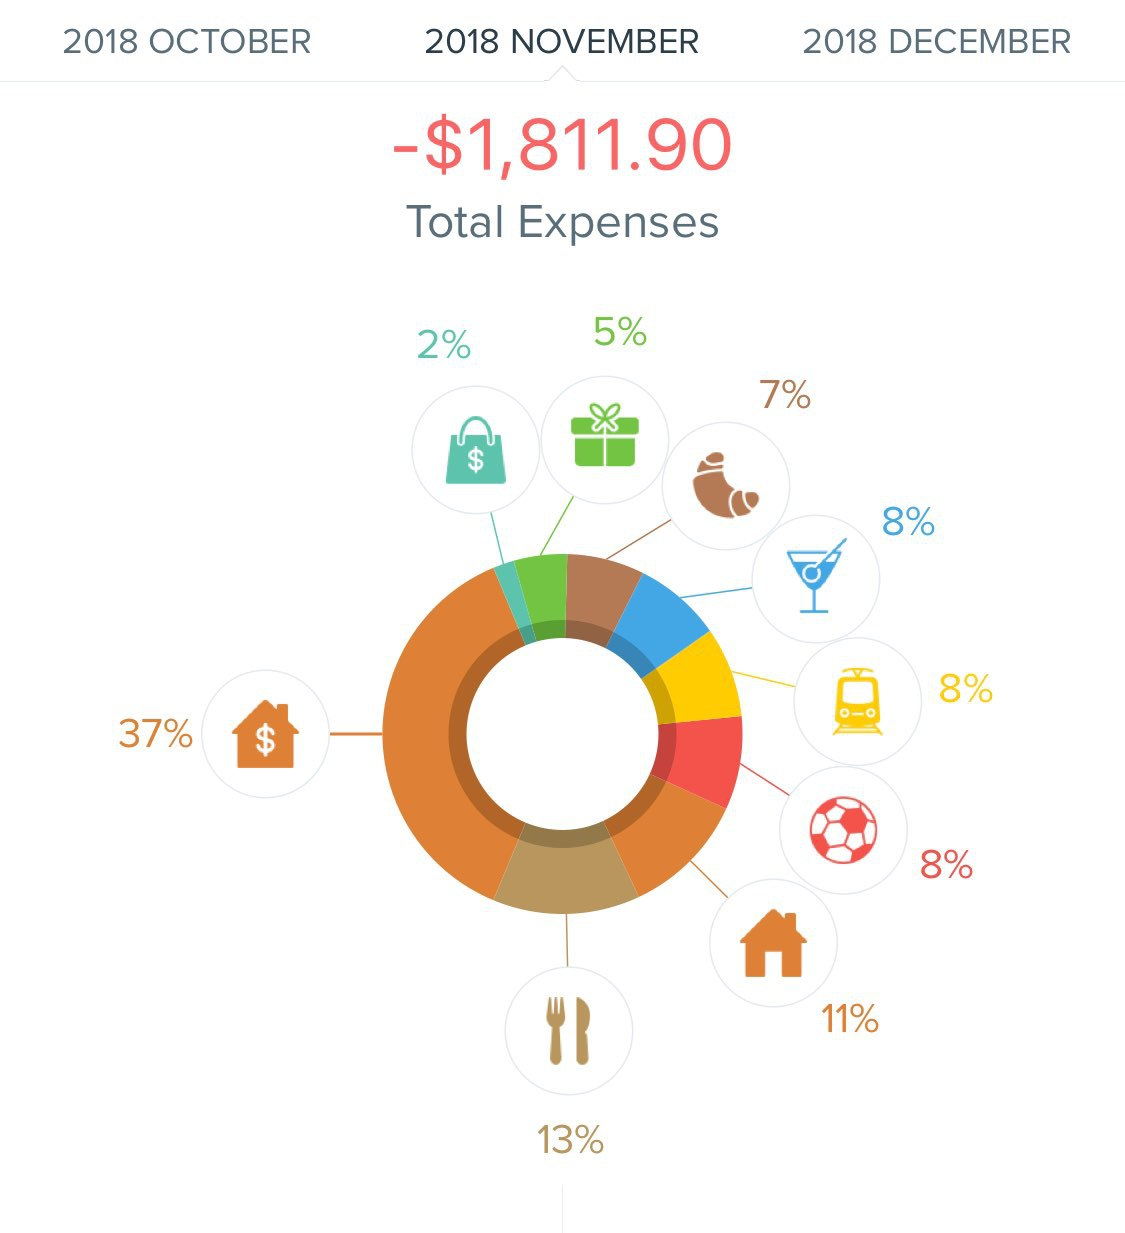 November 2018 Monthly Review - Expenses